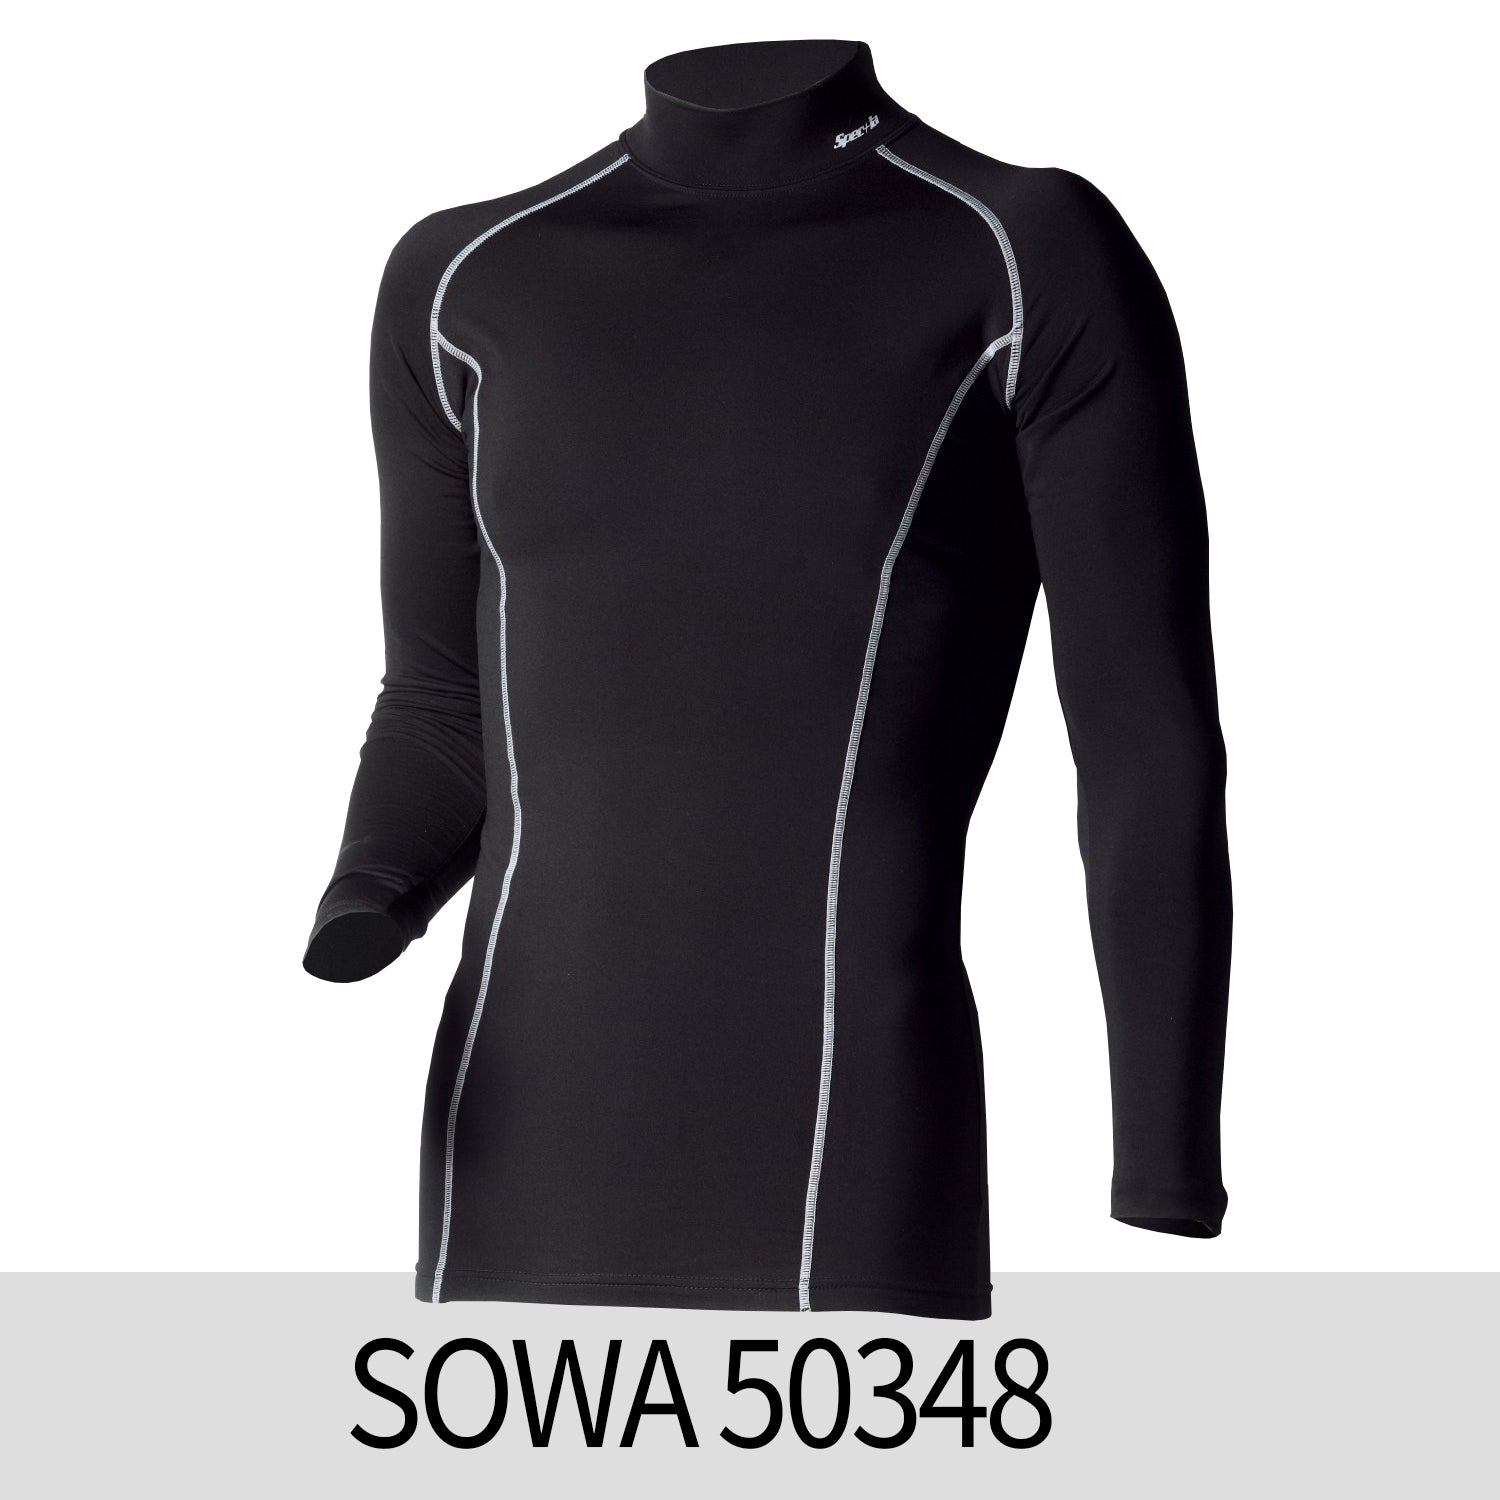 "SOWA 50348 Support High neck shirt "" Special price"""